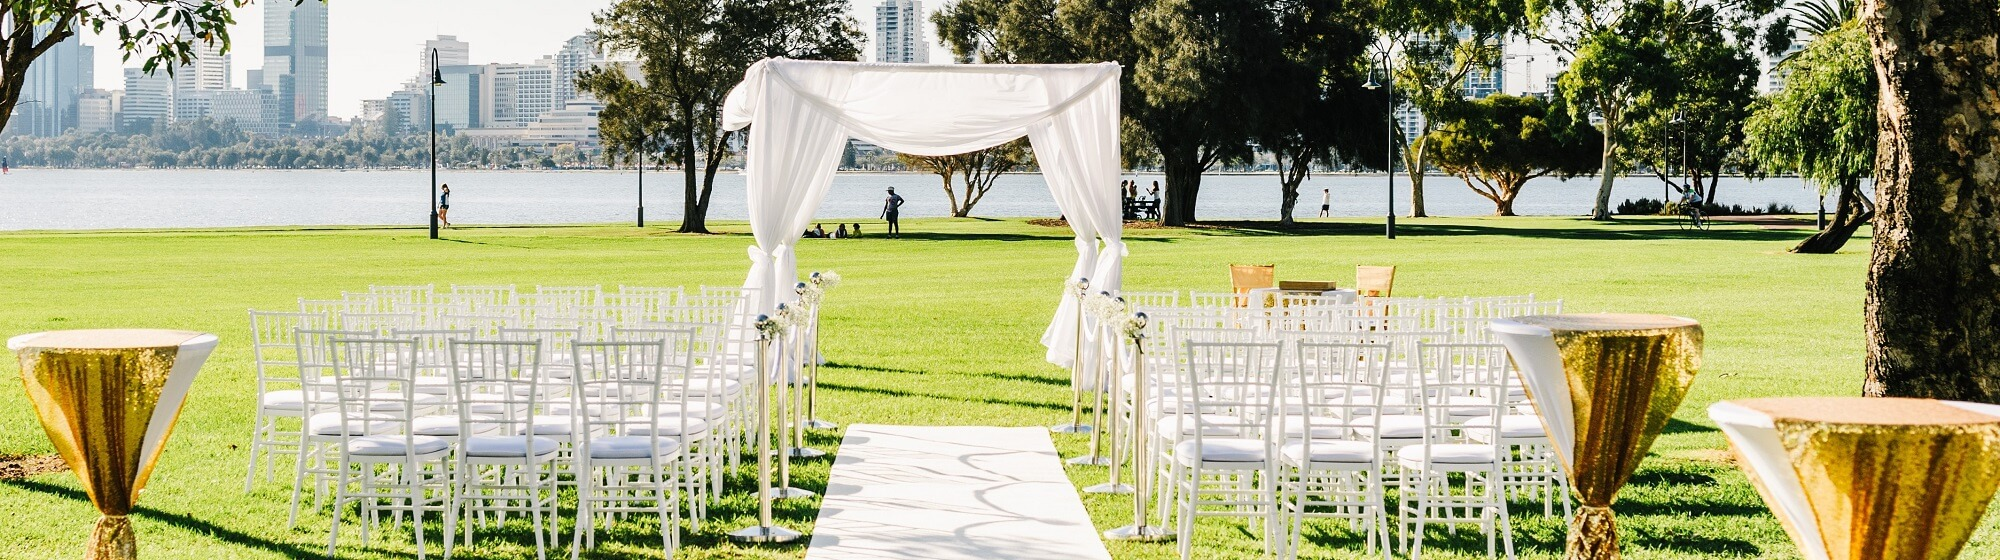 Ceremony-Hire-Package-Foreshore.jpg